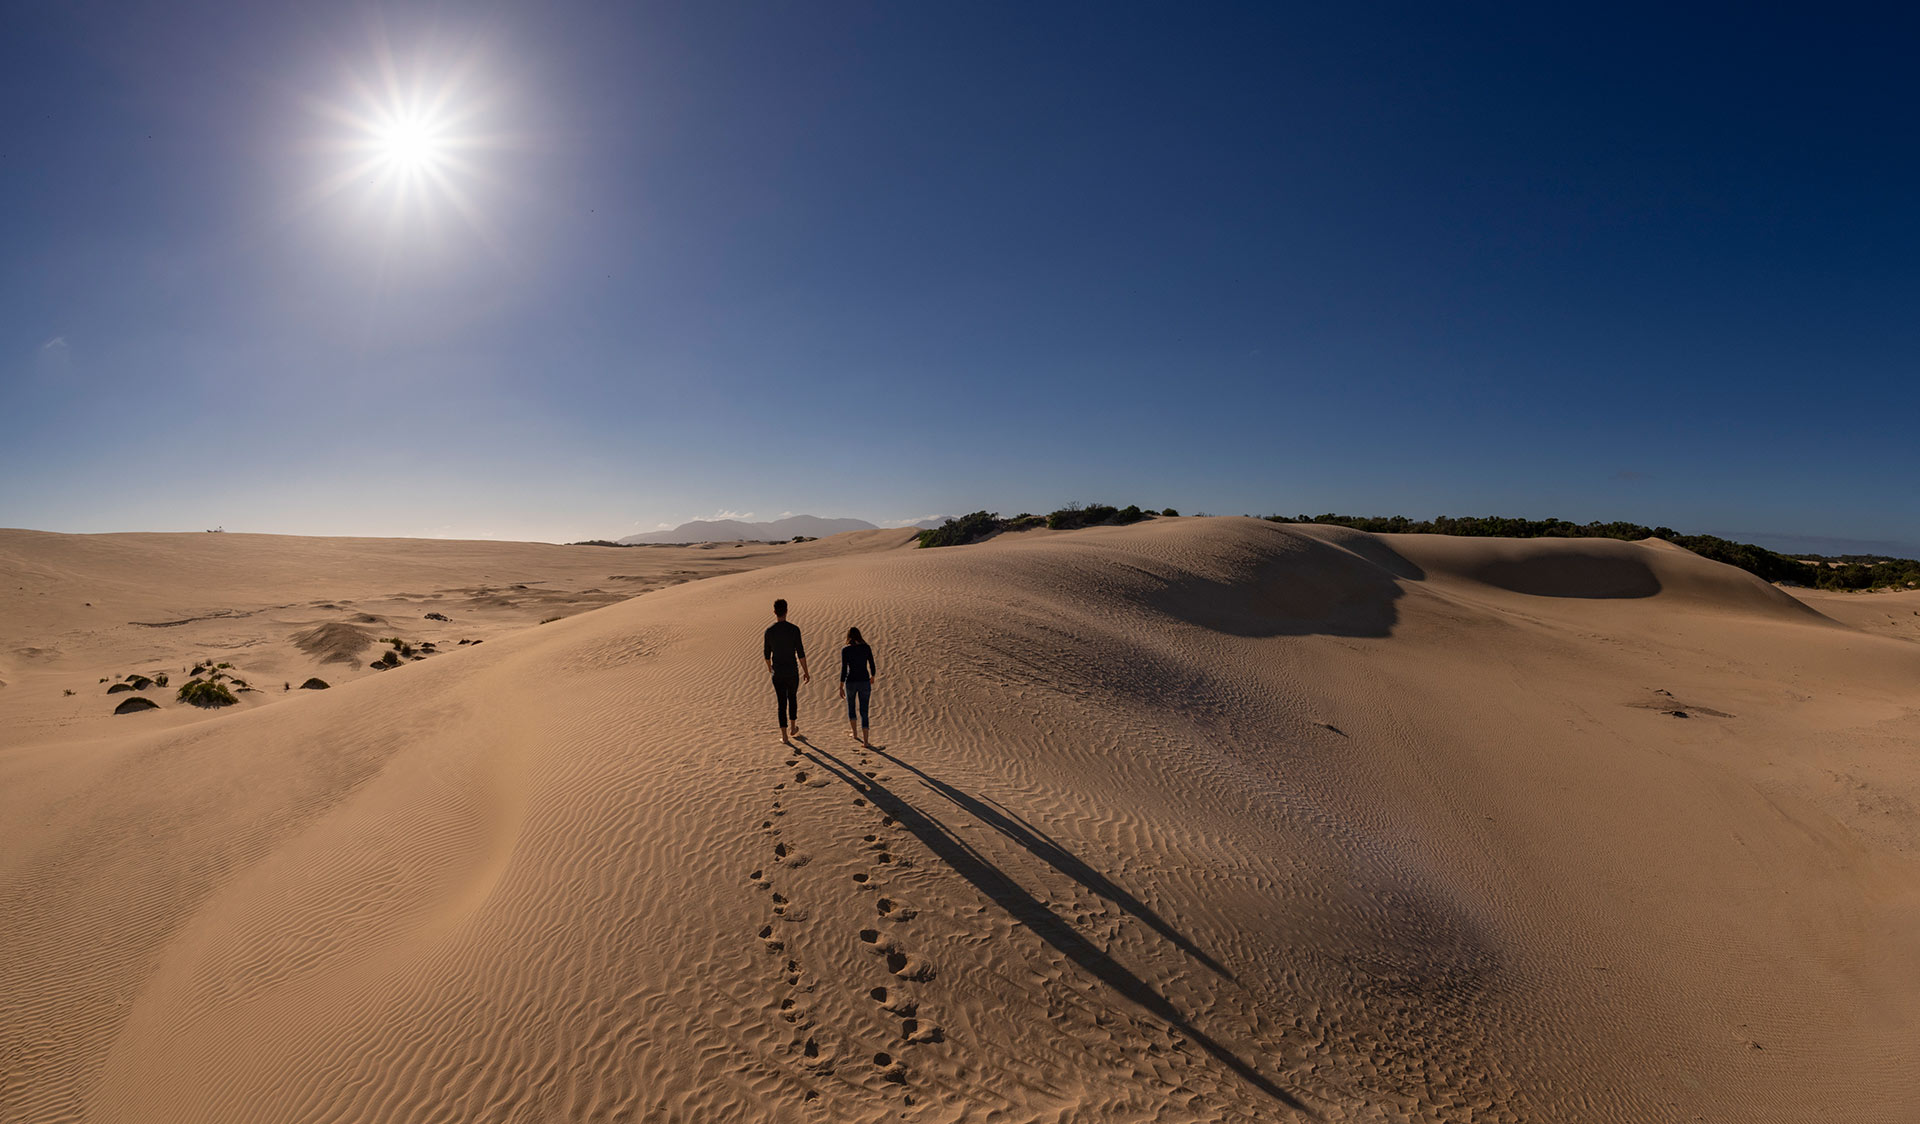 A man and woman walk along the top of an enourmous sand dune in the northern part of Wilsons Promontory.